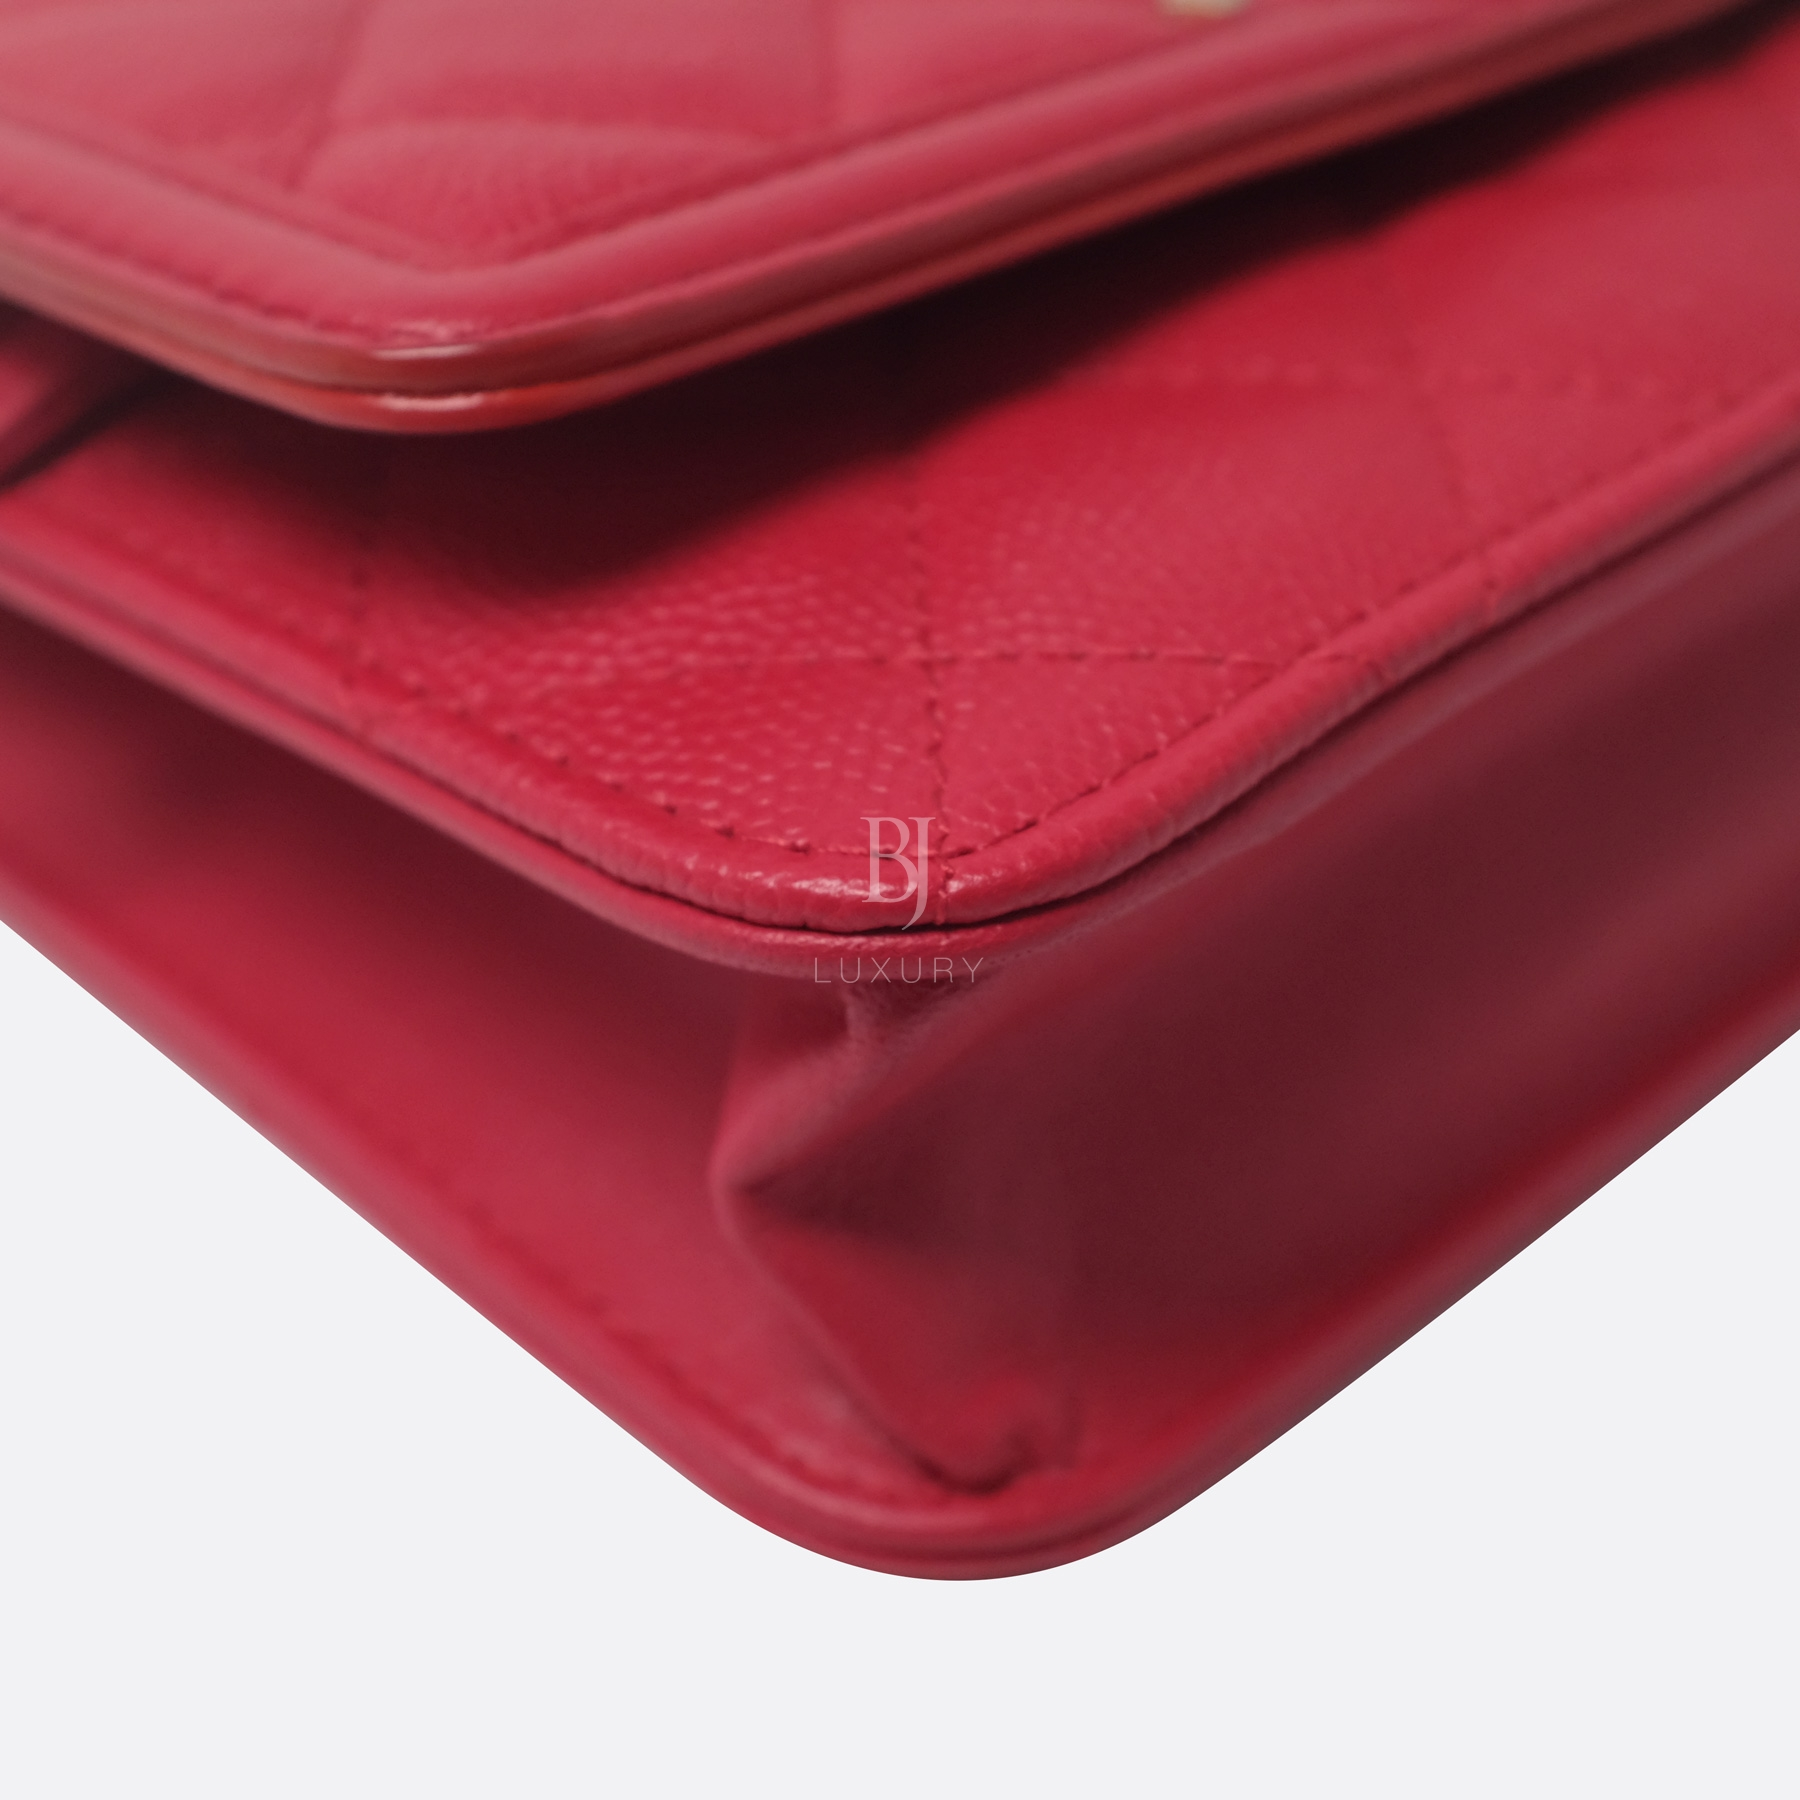 Chanel Wallet On Chain Red Caviar Brushed Gold BJ Luxury 7.jpg